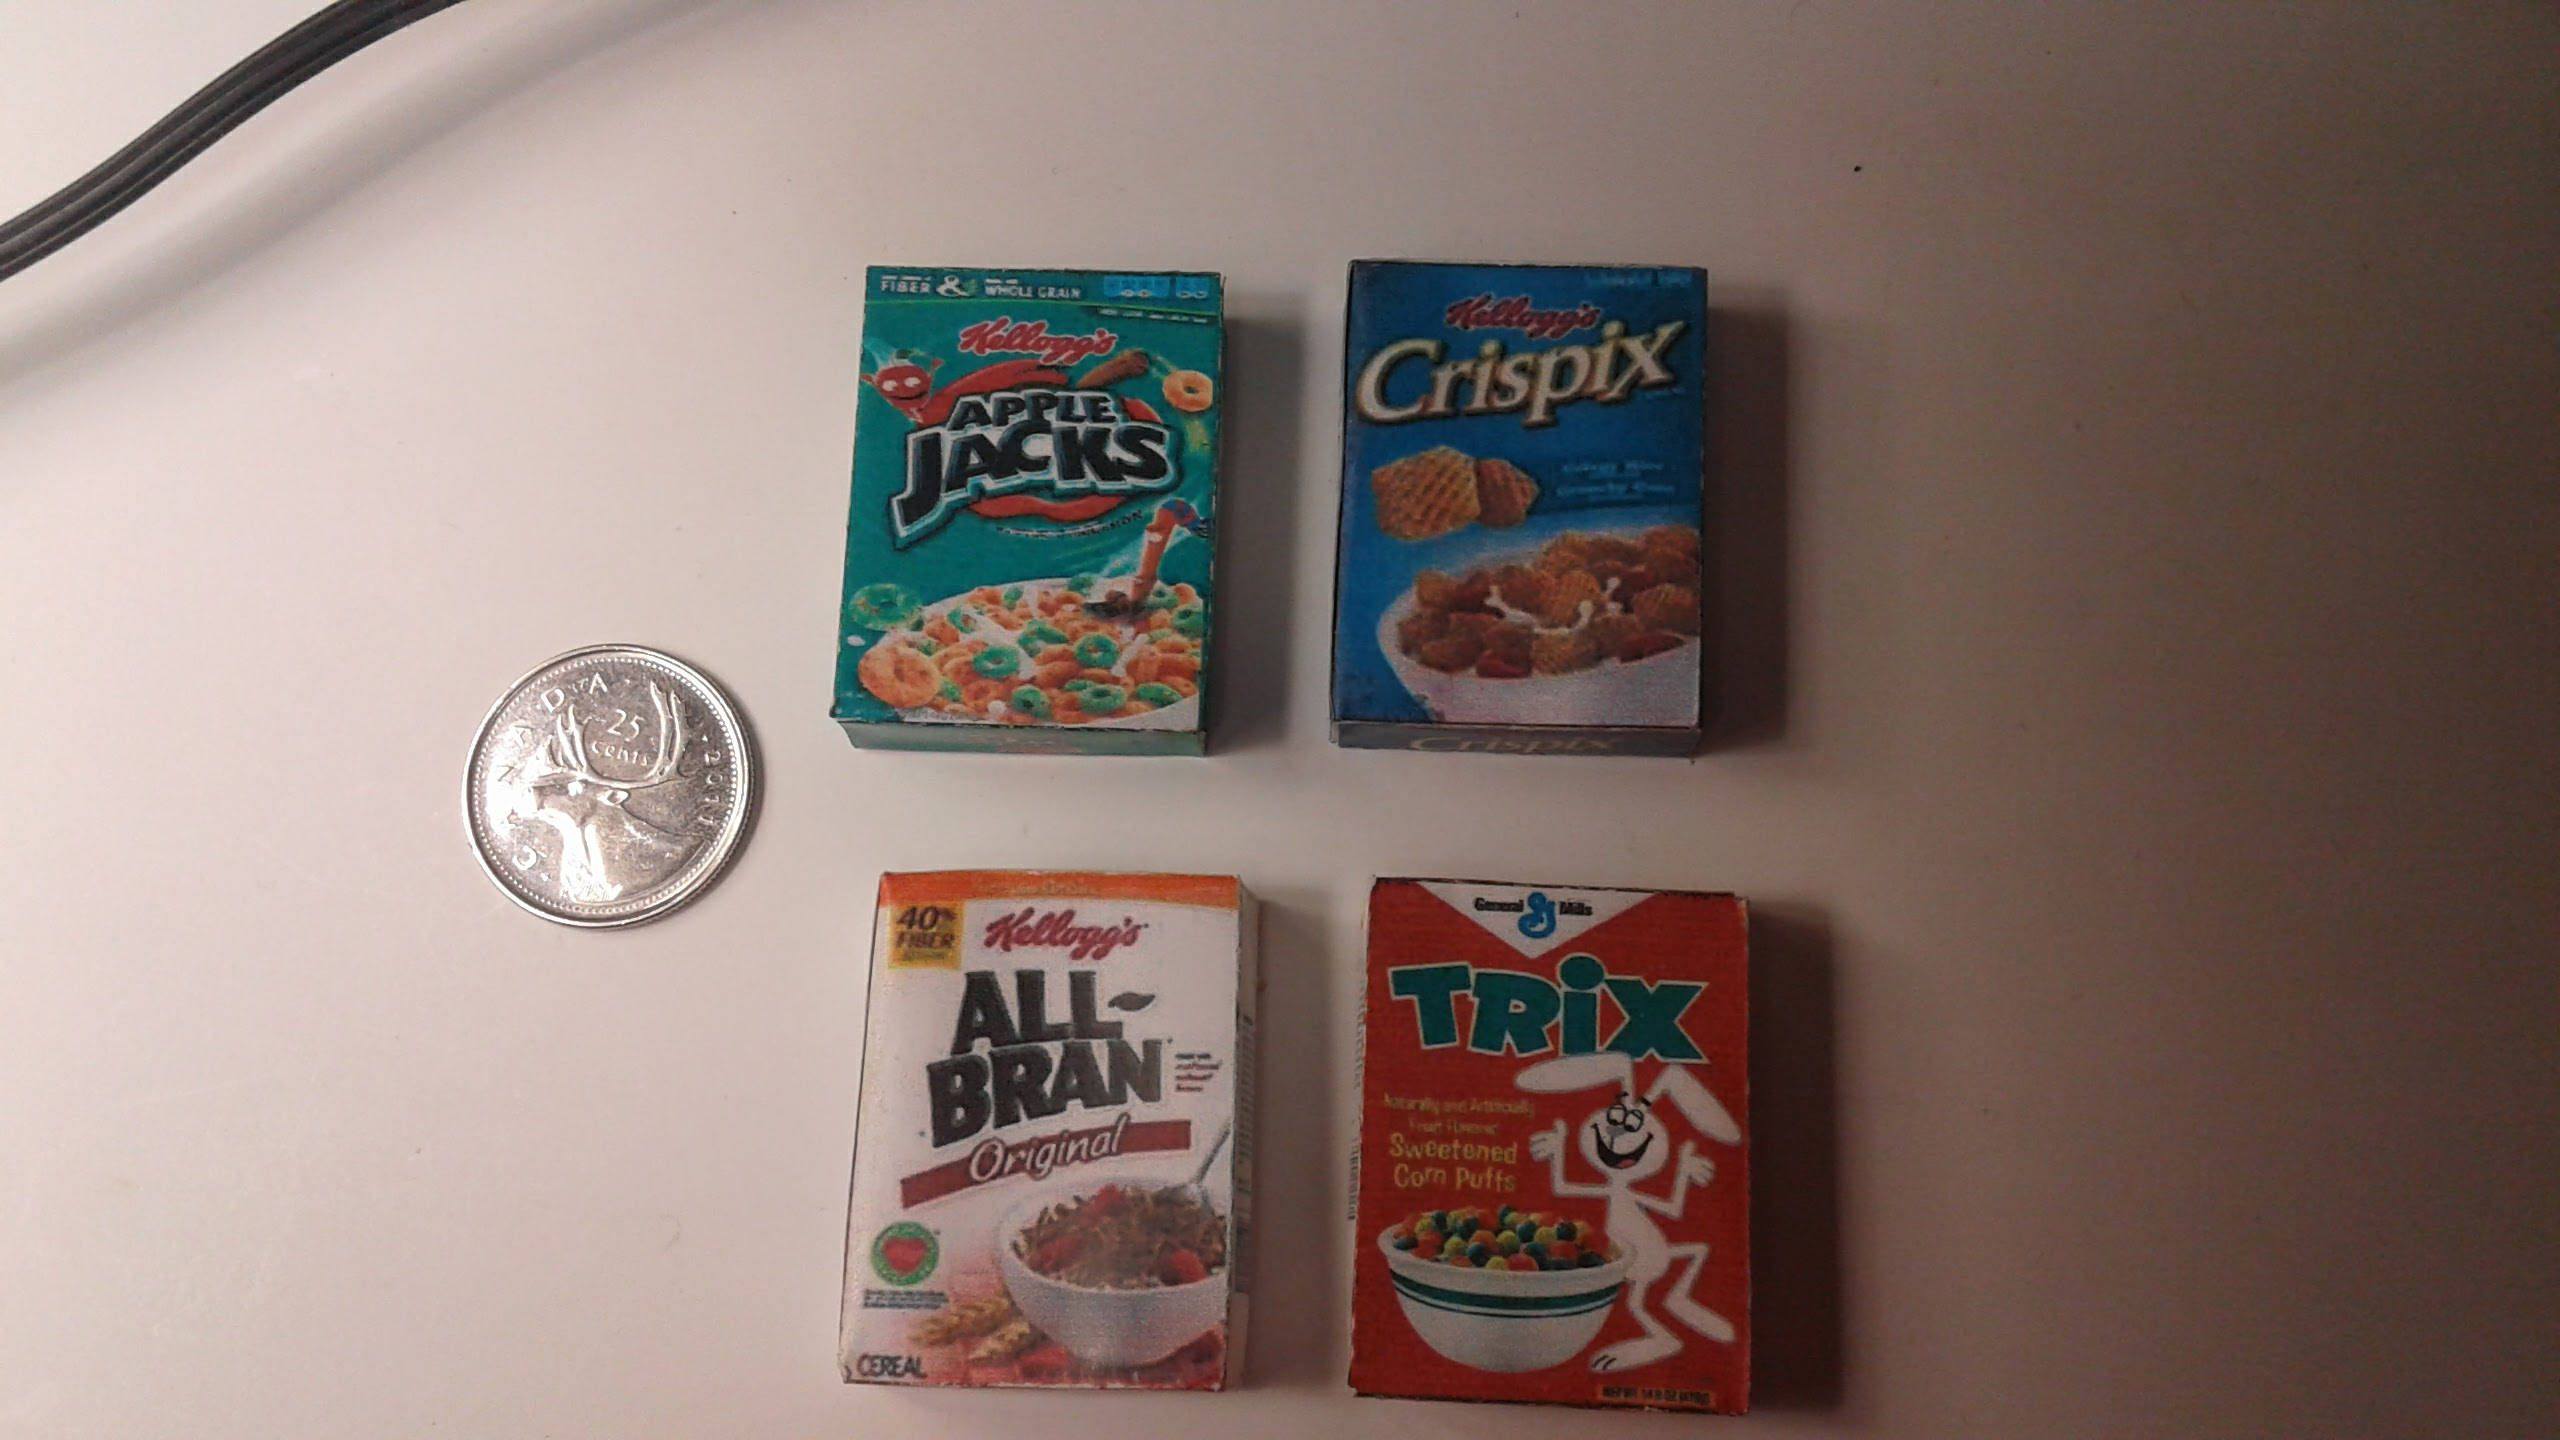 Dollhouse Miniature Well Known Breakfast Cereal by Cindi/'s Mini/'s